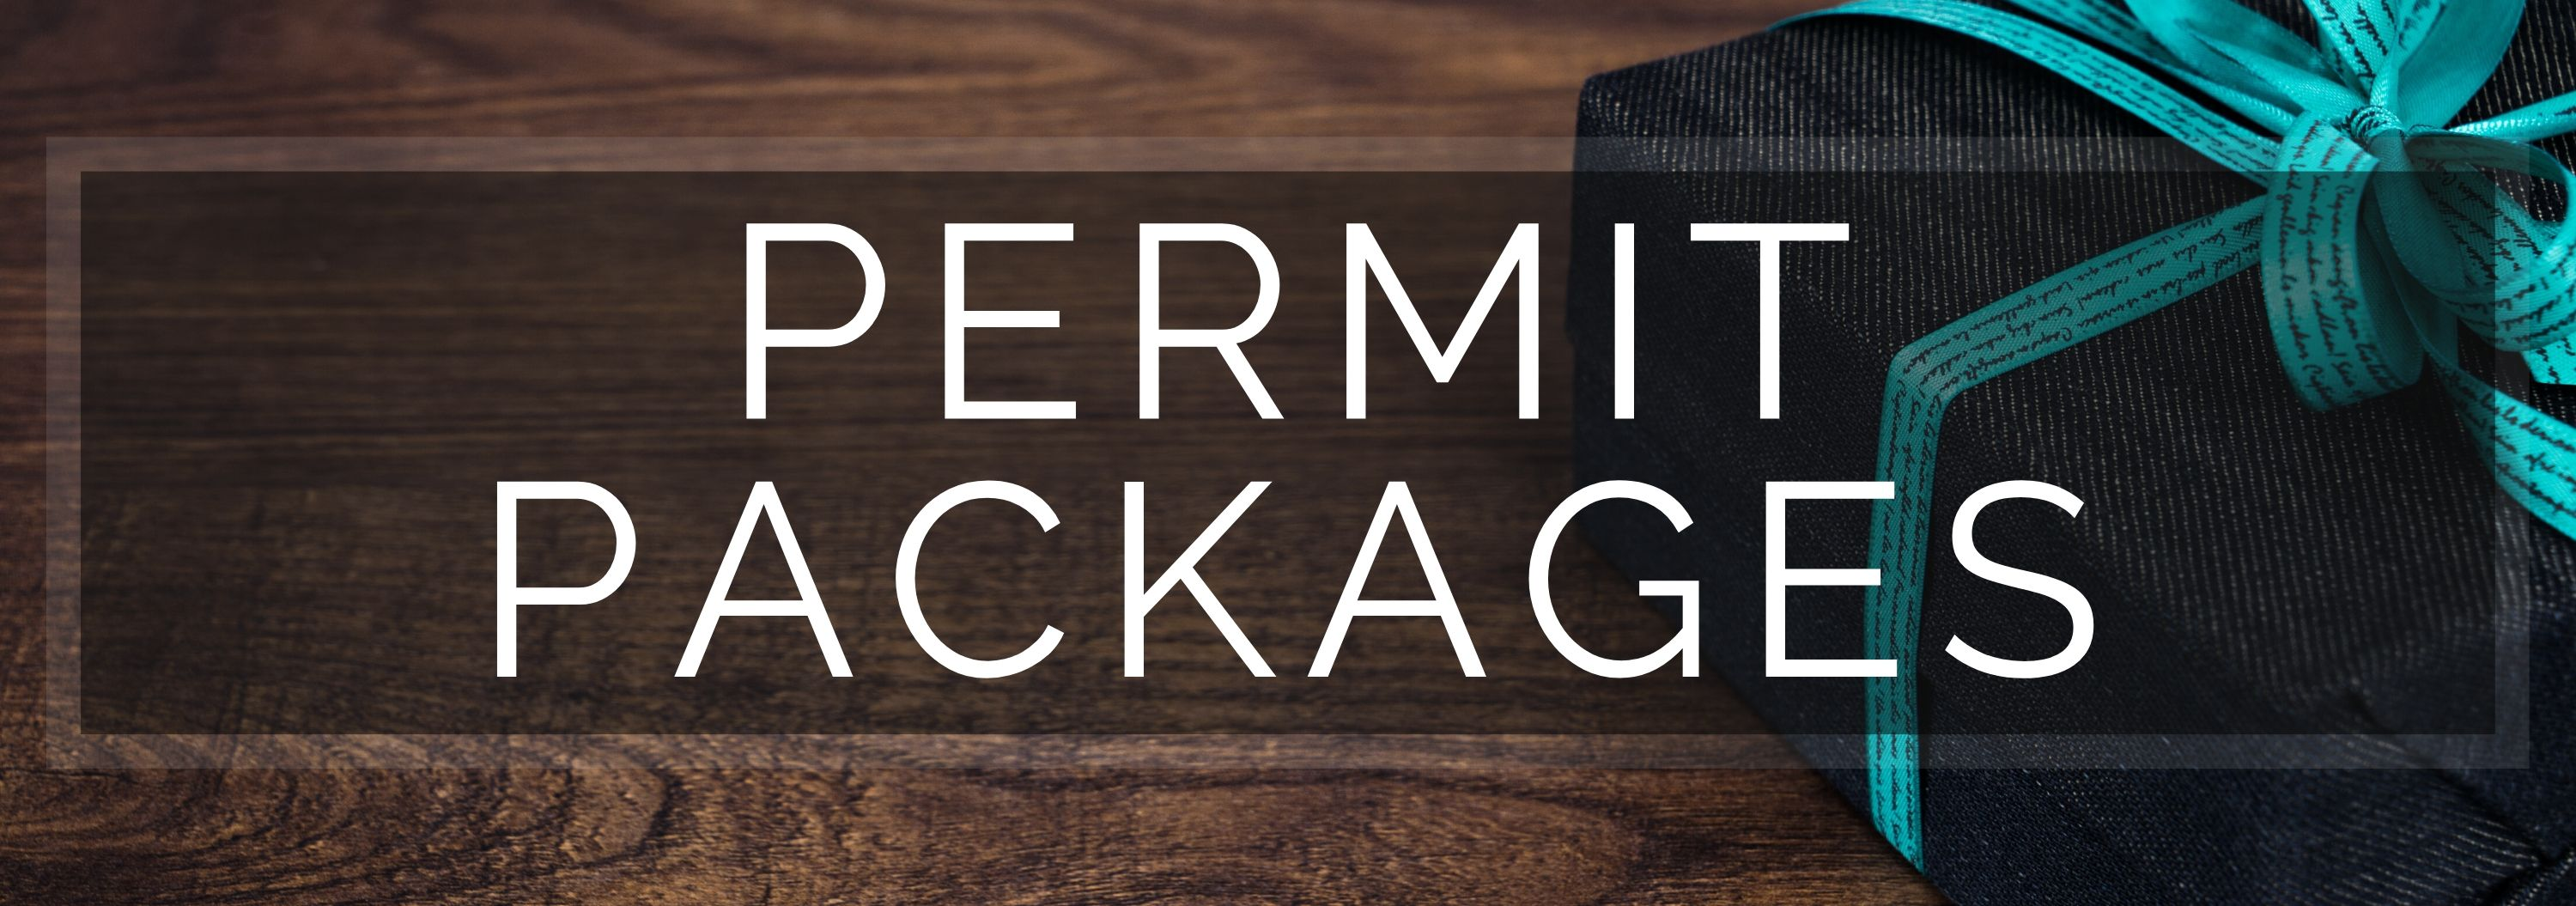 Permit Packages Banner